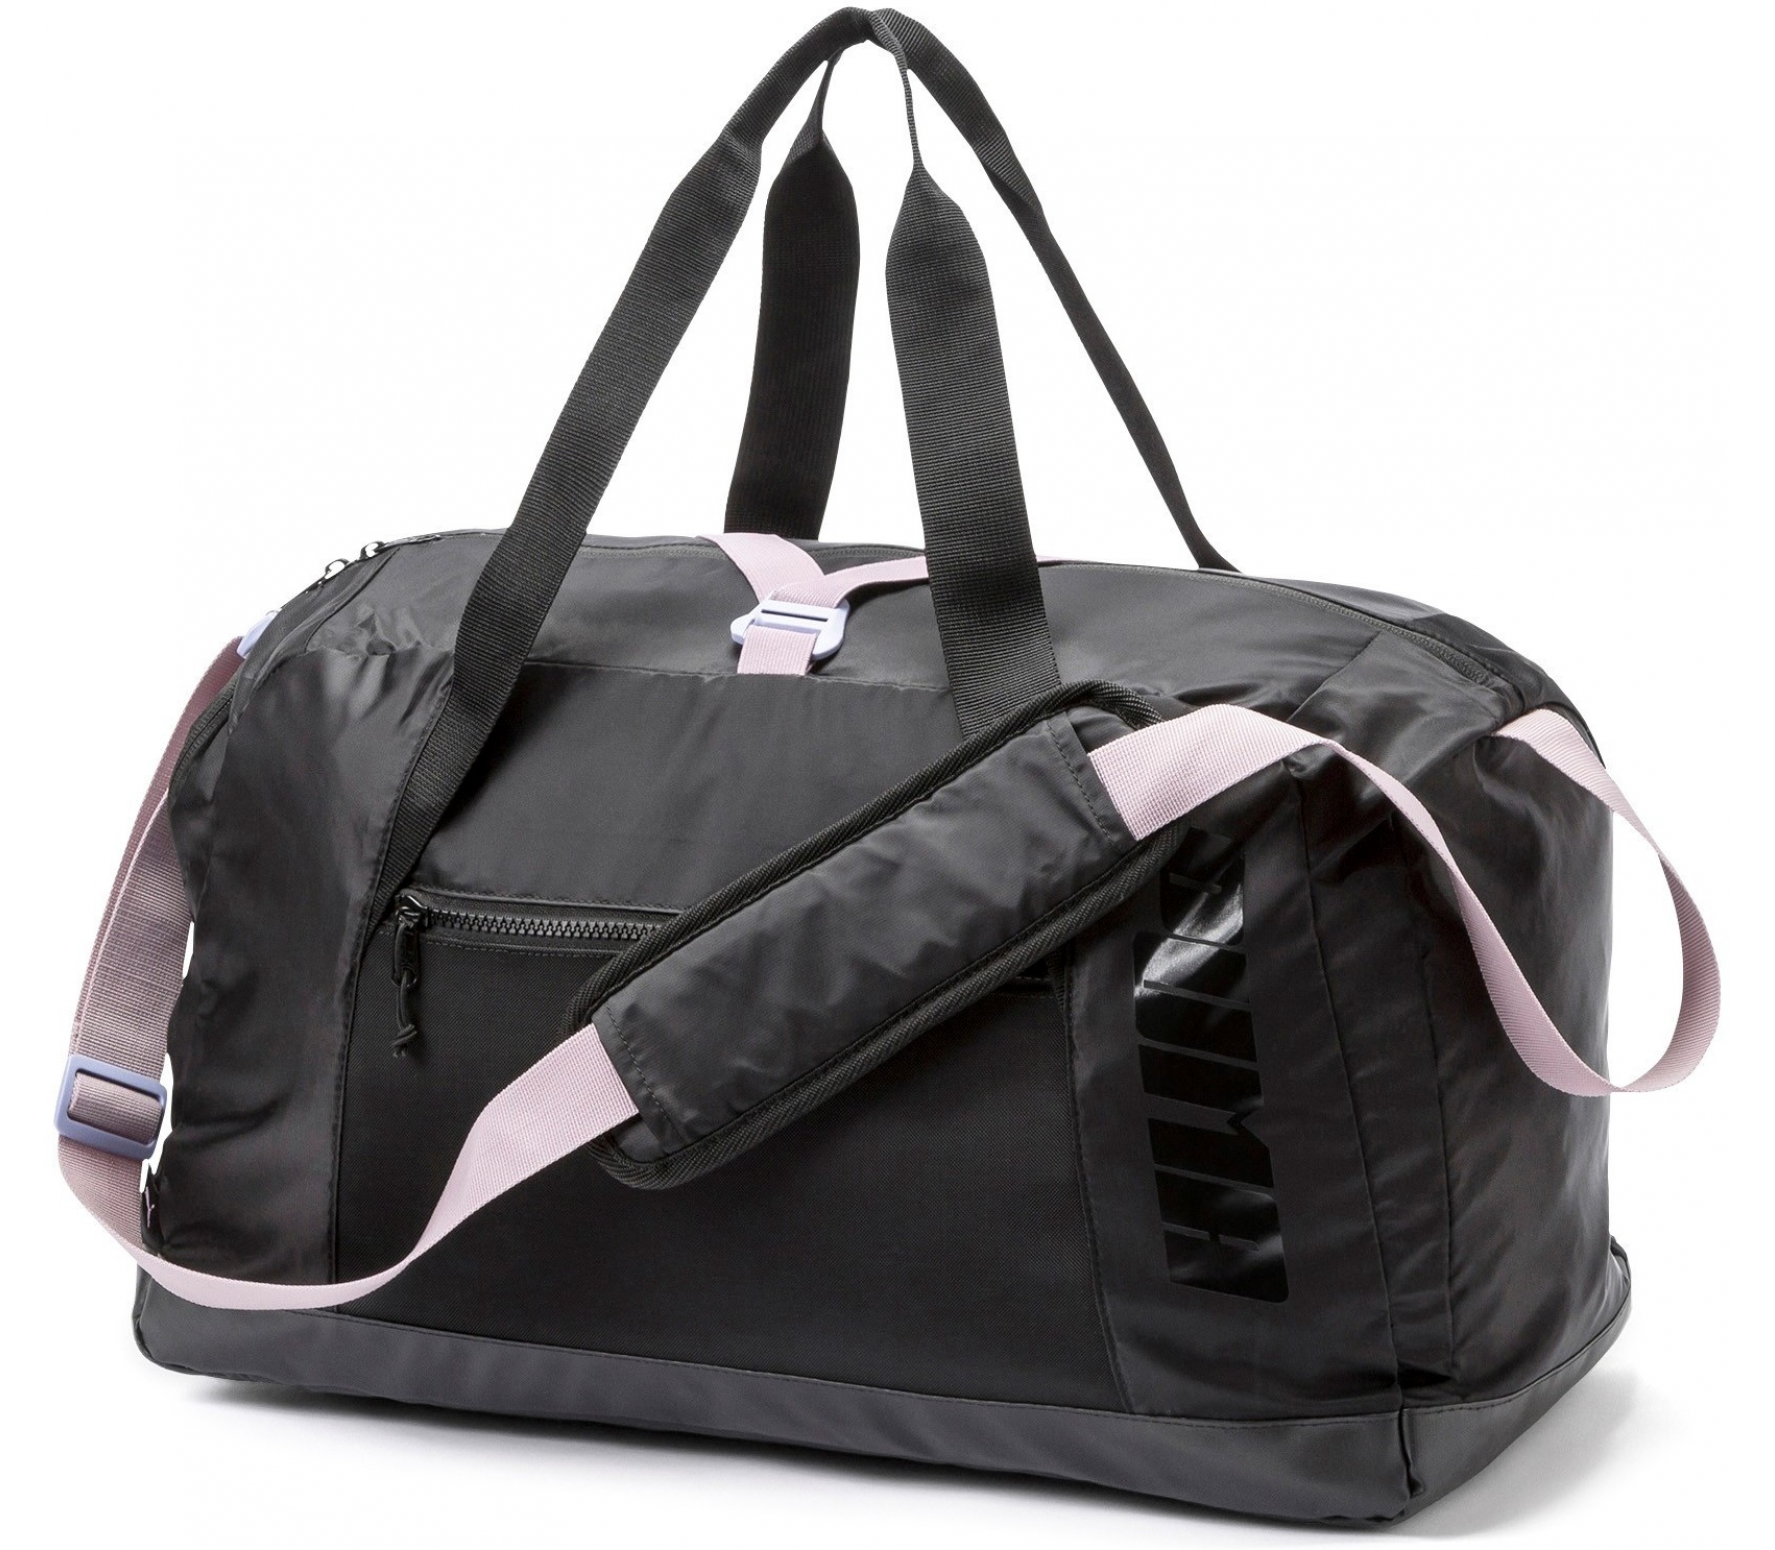 Puma - AT duffle bag women's training bag (black)